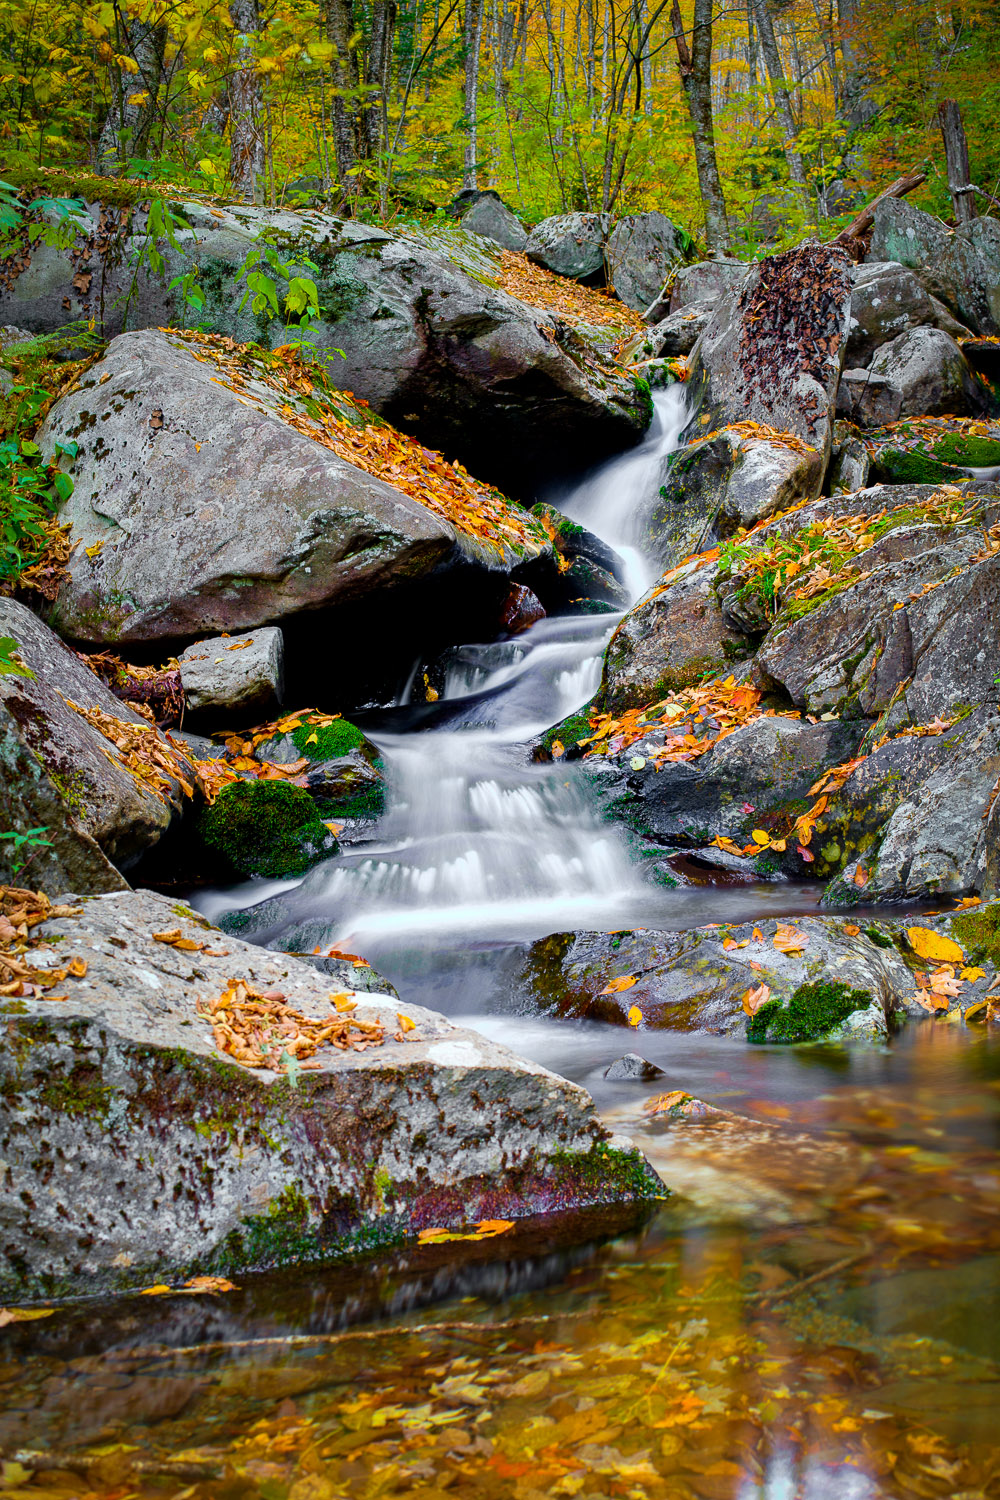 006_Smokie Moutain Waterfall.jpg